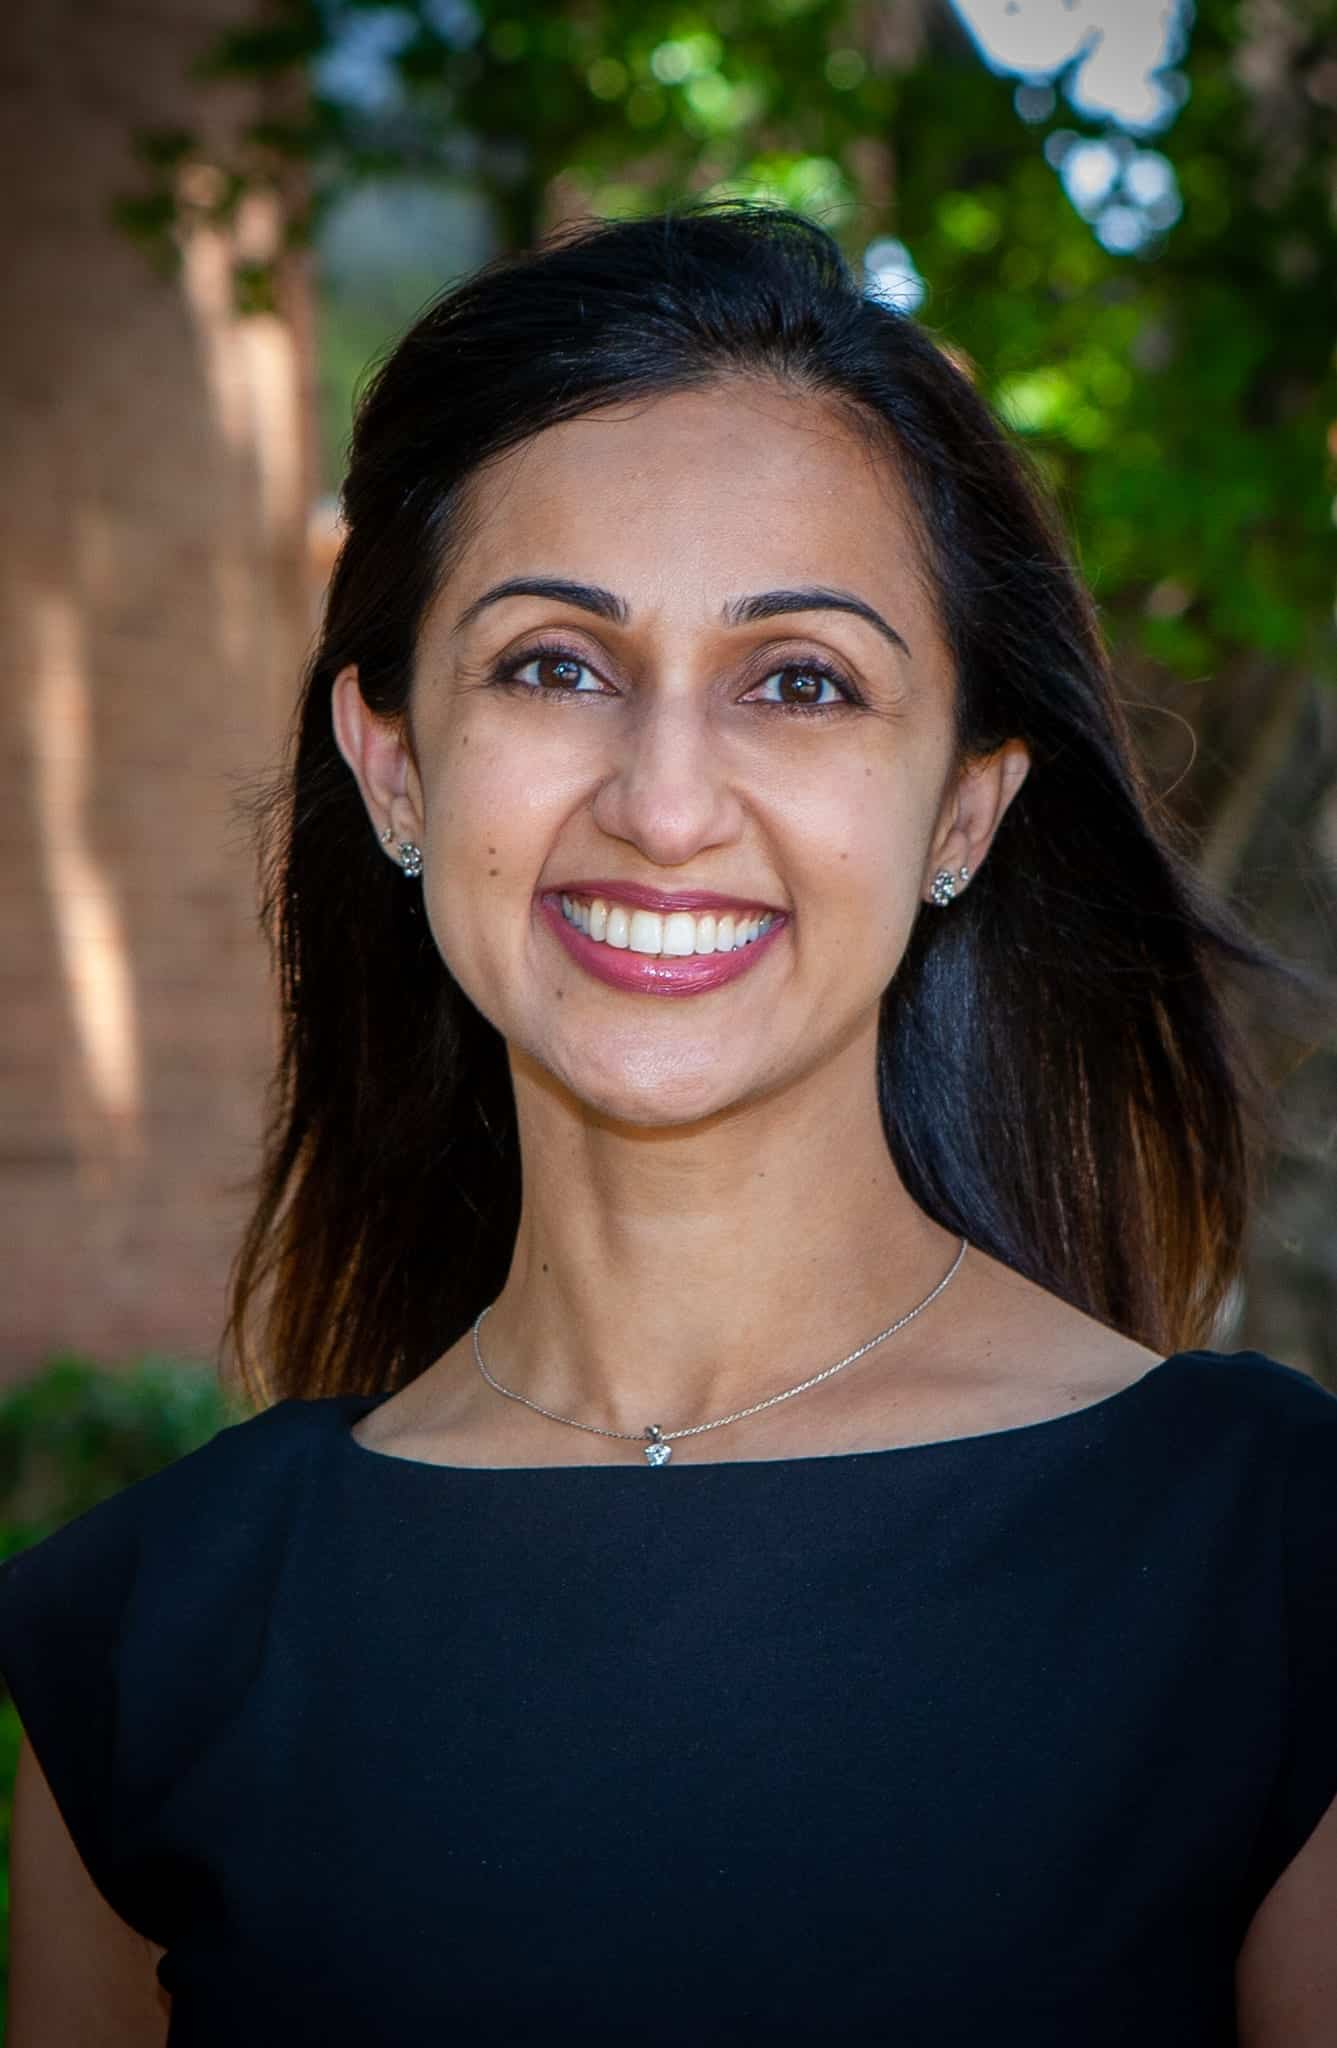 Nadia Budhani DMD - Irving Endodontist - Endodontic Associates of Irving